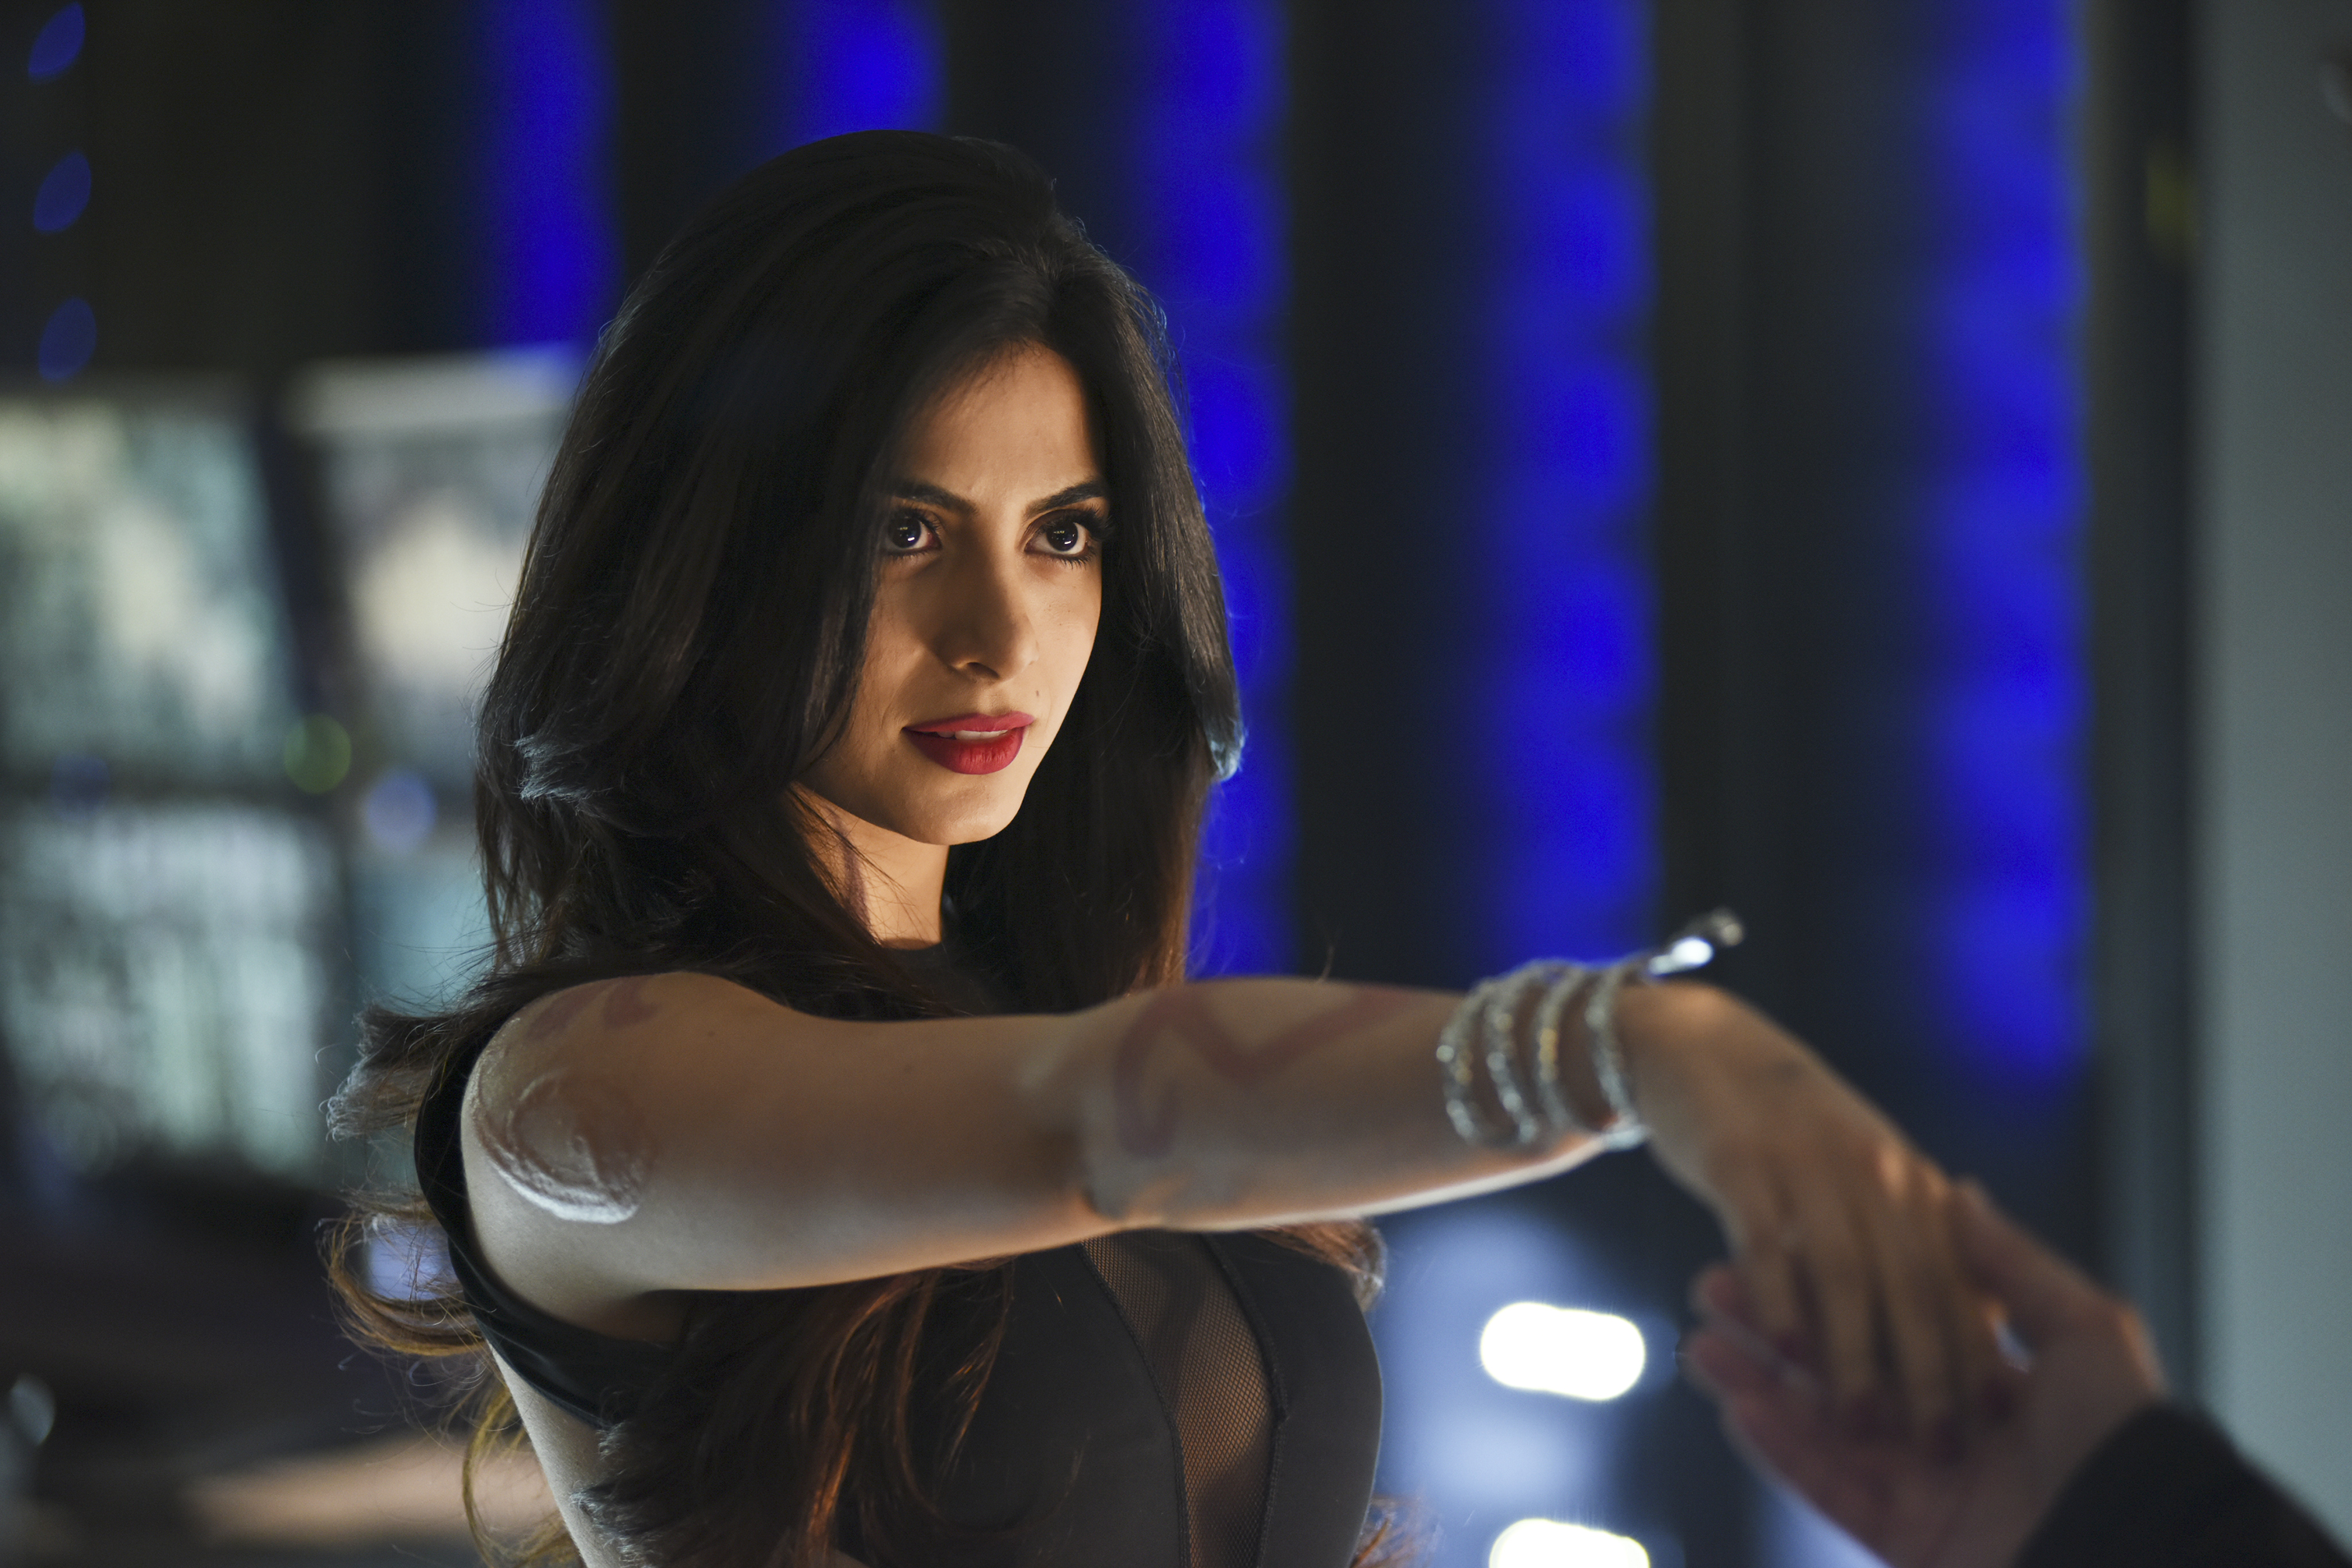 "SHADOWHUNTERS - ""The Descent Into Hell Isn't Easy"" - Clary's memories may be the key to finding her mother and The Mortal Cup in ""The Descent Into Hell Isn't Easy,"" an all-new episode of ""Shadowhunters,"" airing  TUESDAY, JANUARY 19 (9:00 - 10:00 p.m. EST) on Freeform, the new name for ABC Family. ABC Family is becoming Freeform on January 12, 2016. (Freeform/John Medland) EMERAUDE TOUBIA"